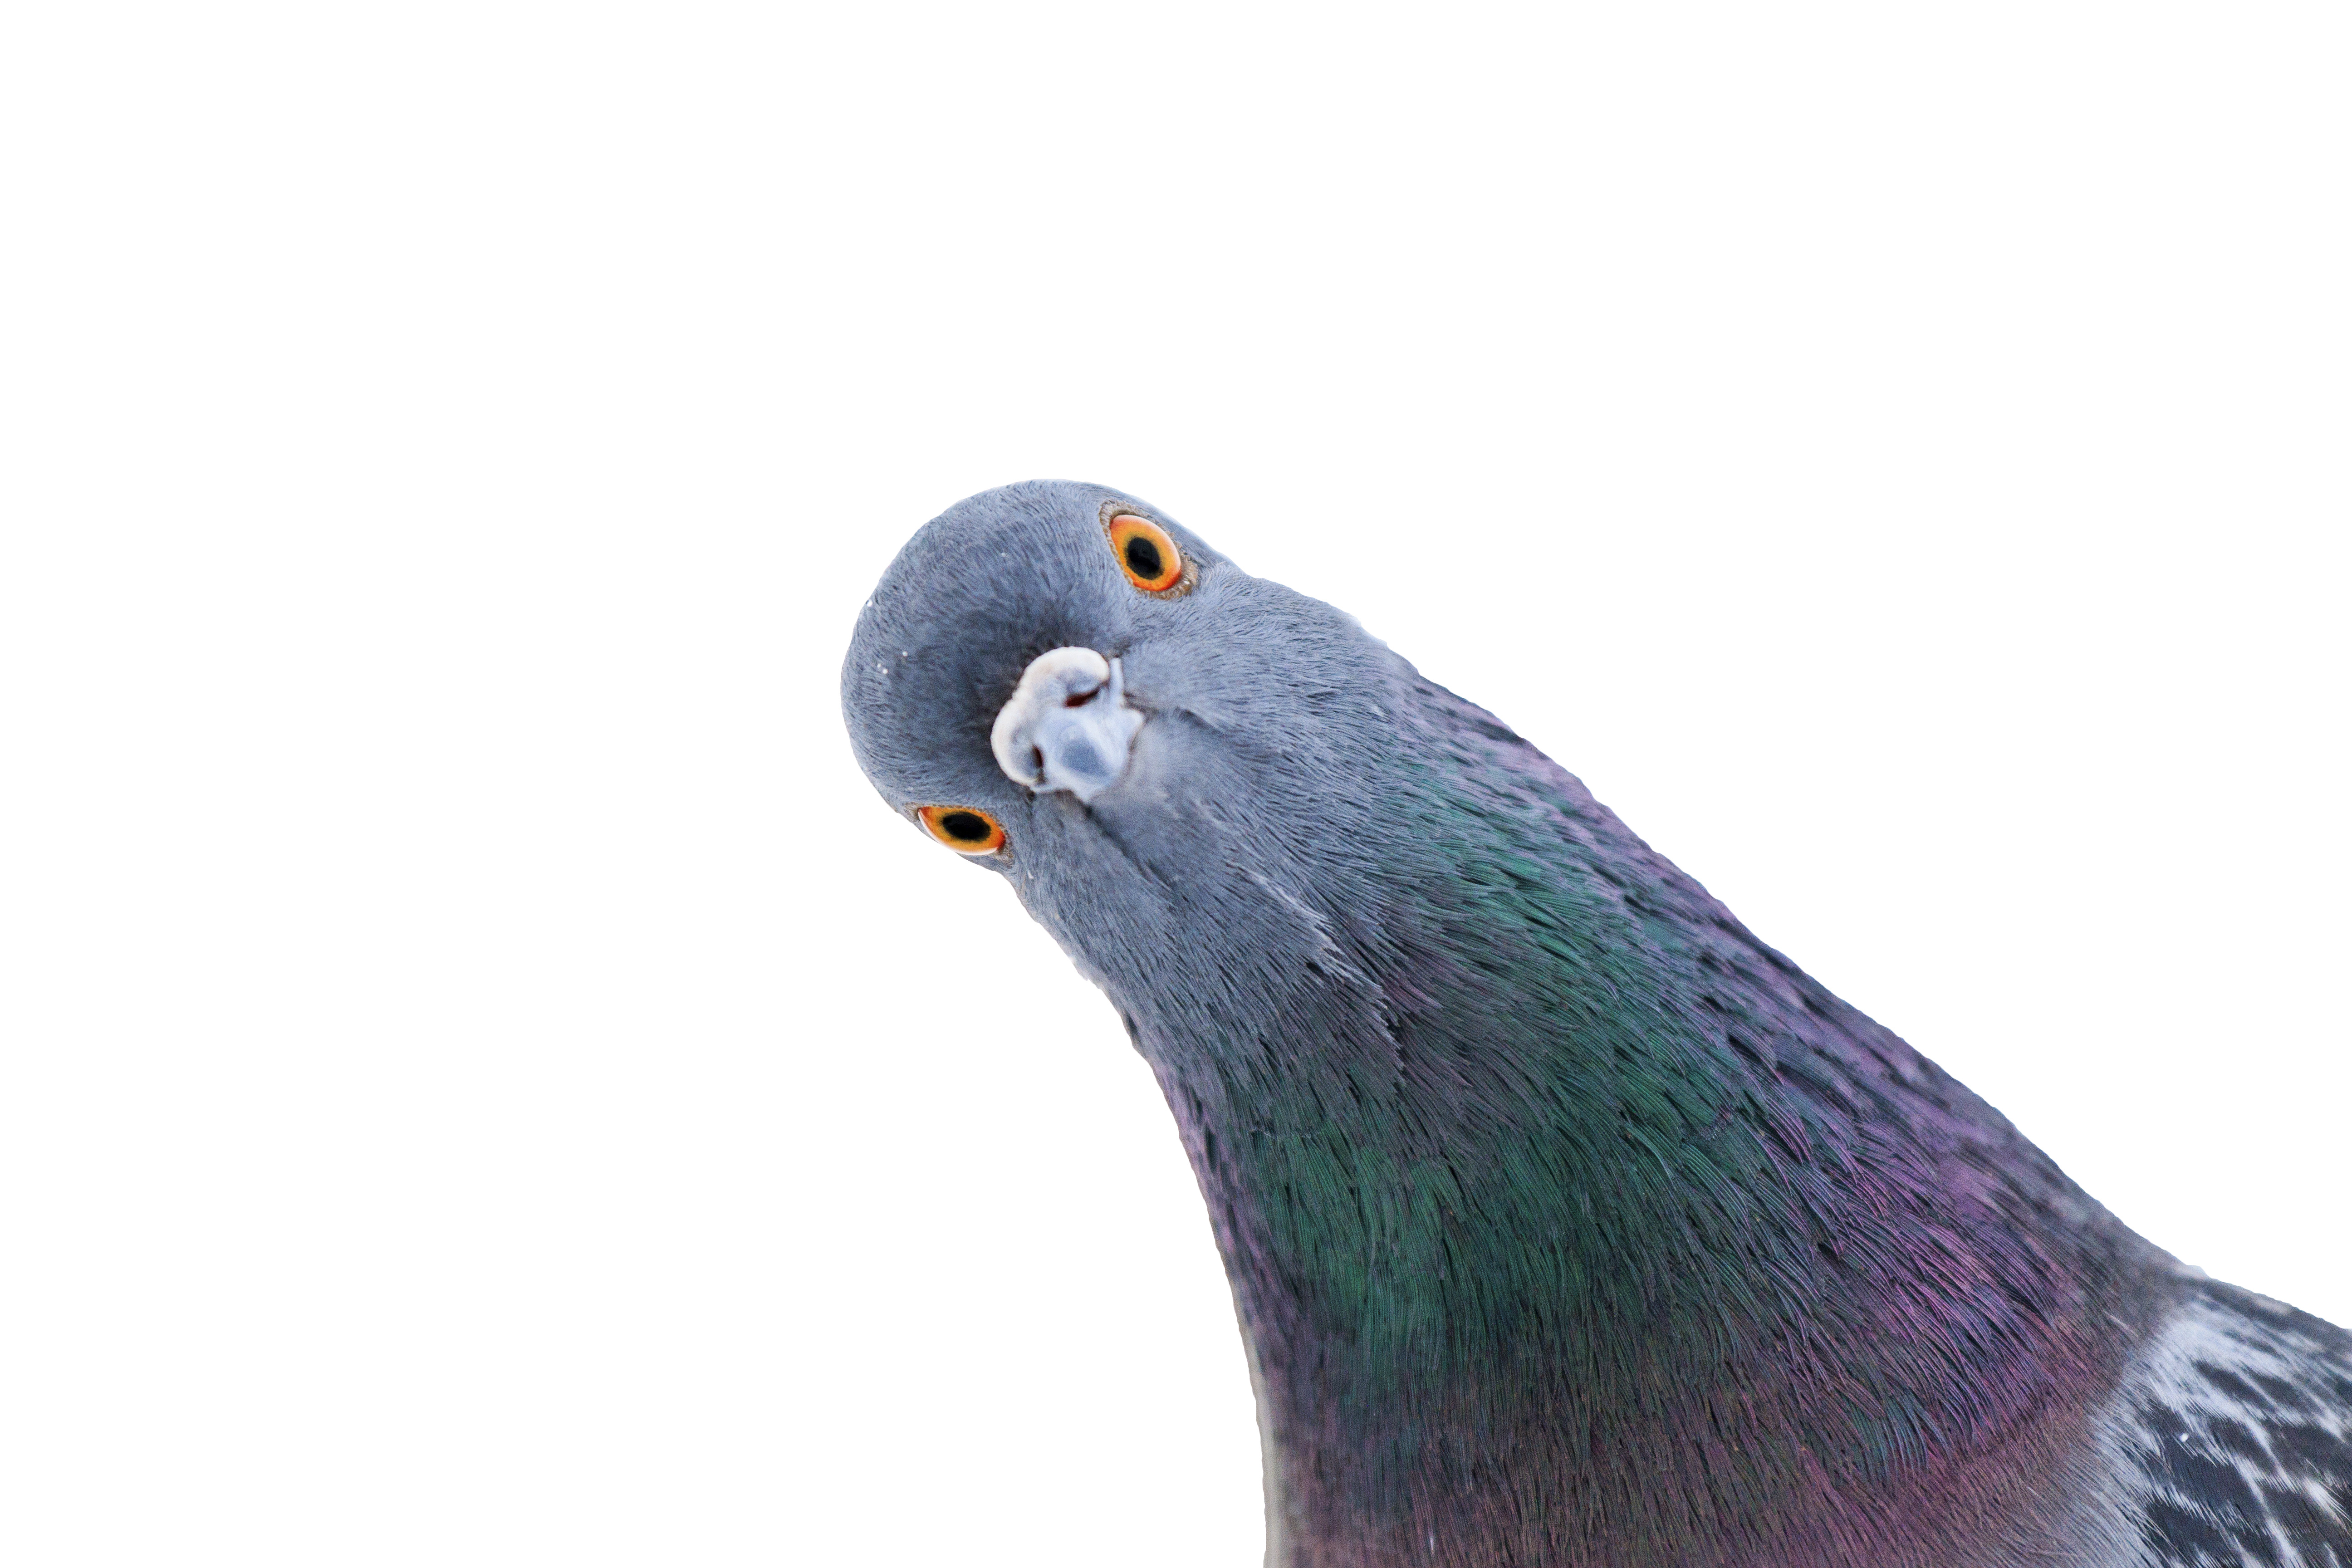 This COVID pigeon story from Australia is proof people have lost their minds